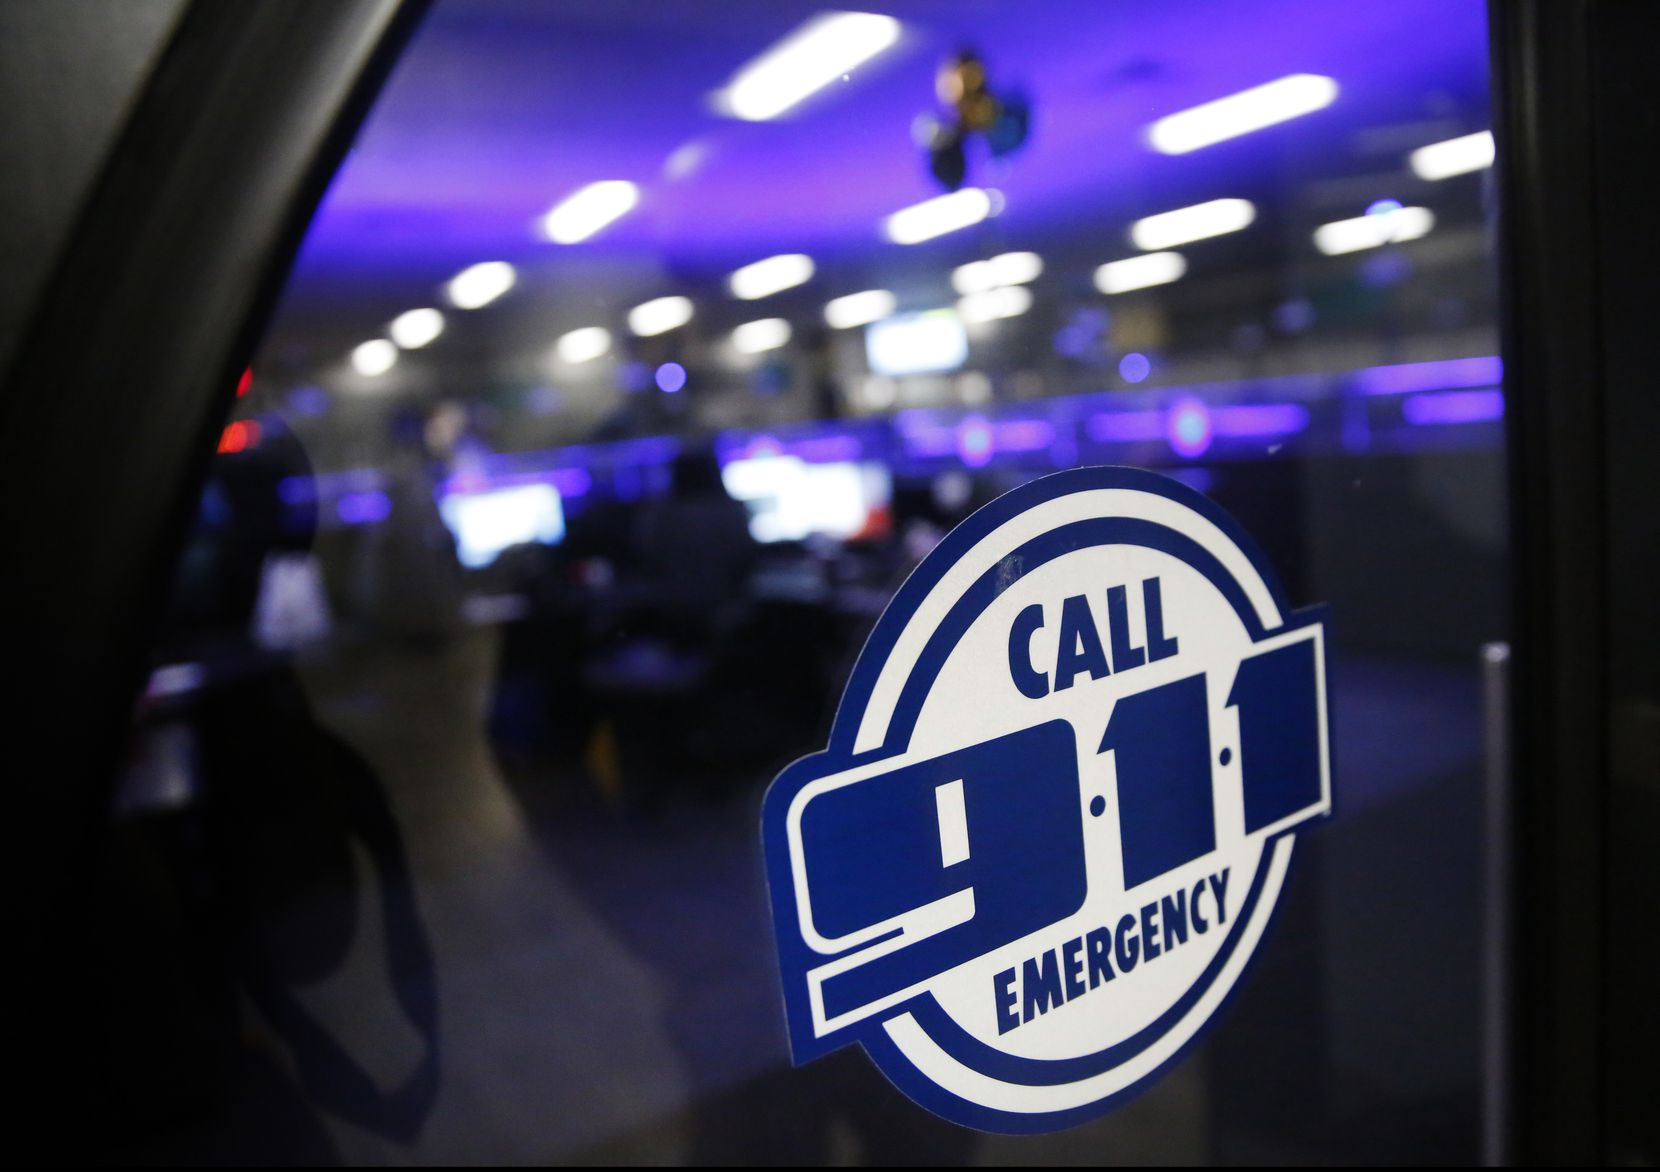 The Dallas Police 911 call center at Dallas City Hall in Dallas on Friday, May 3, 2019. (Rose Baca/Staff Photographer)